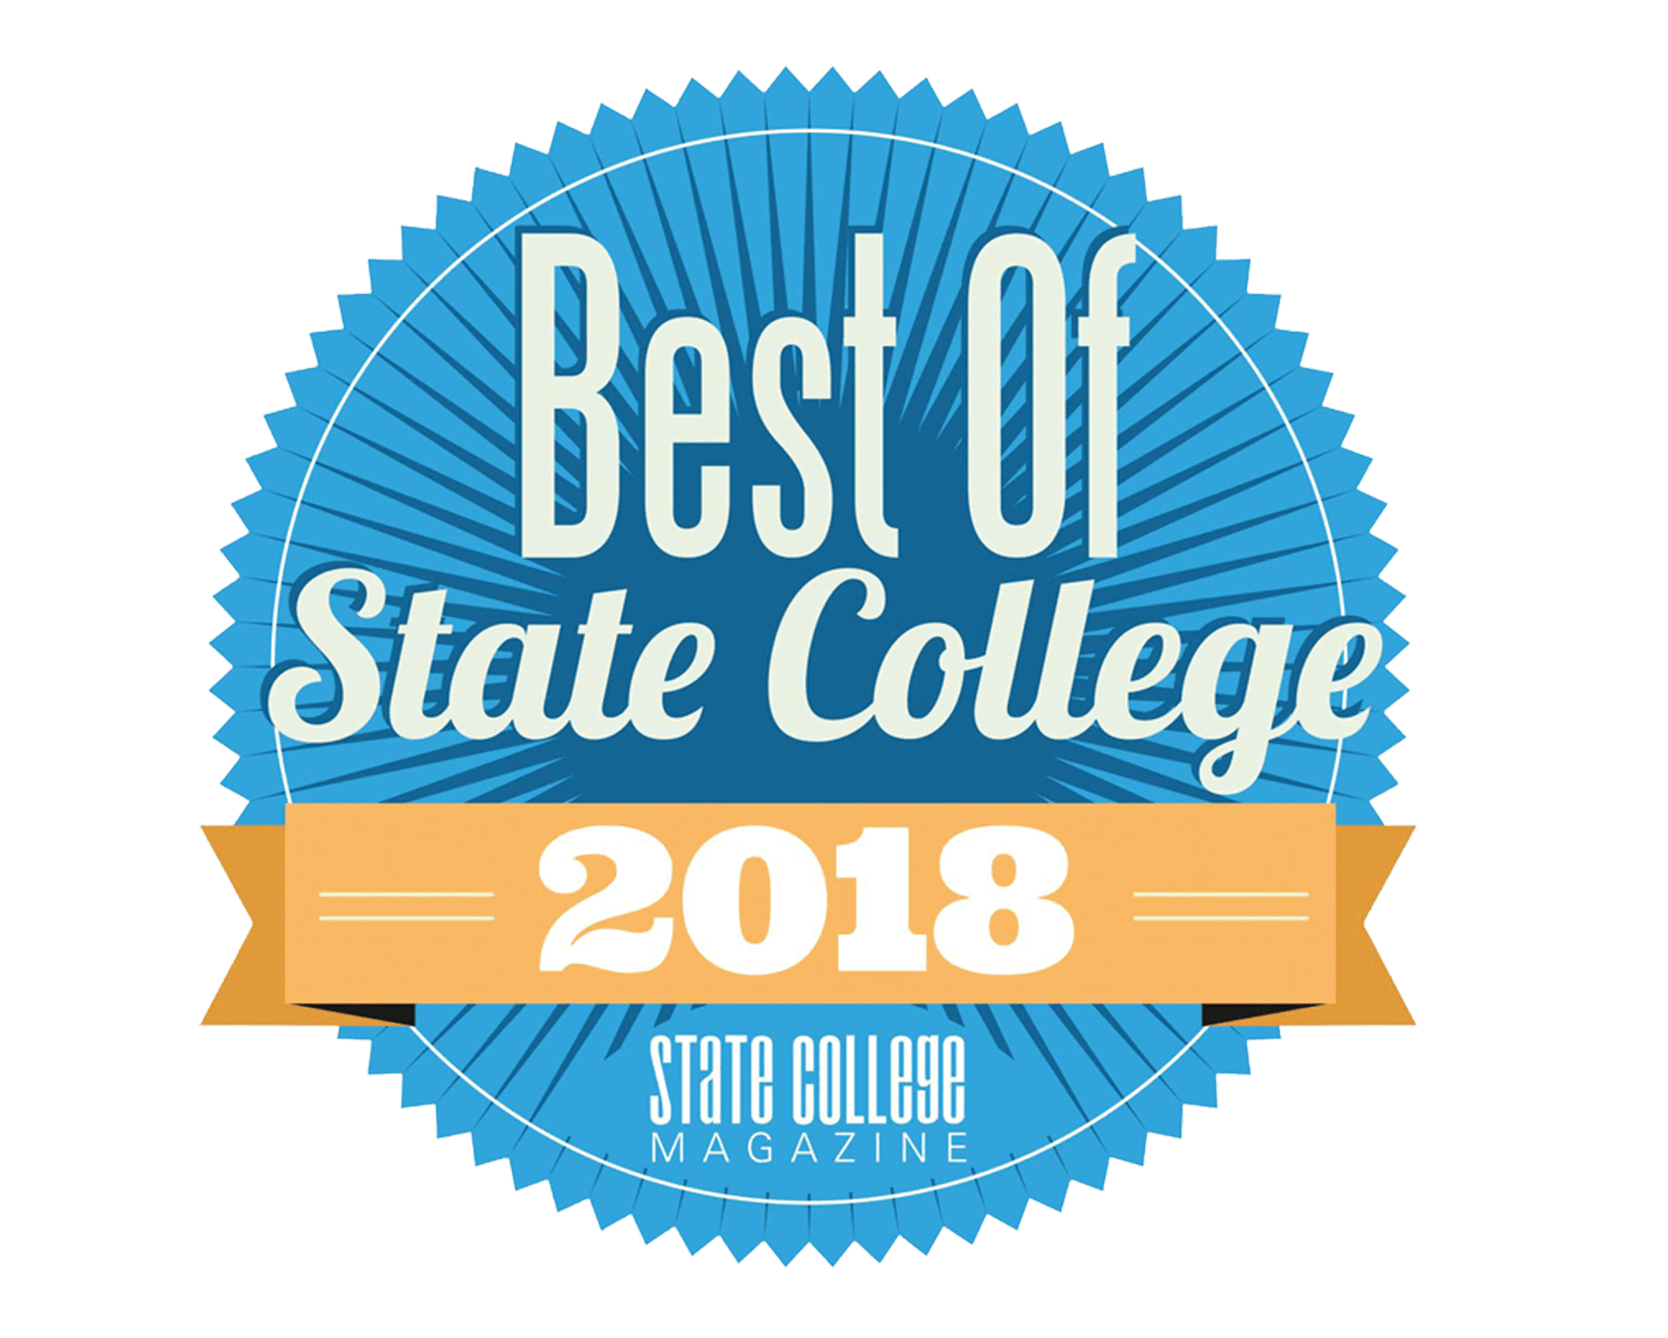 Best of state college 2018